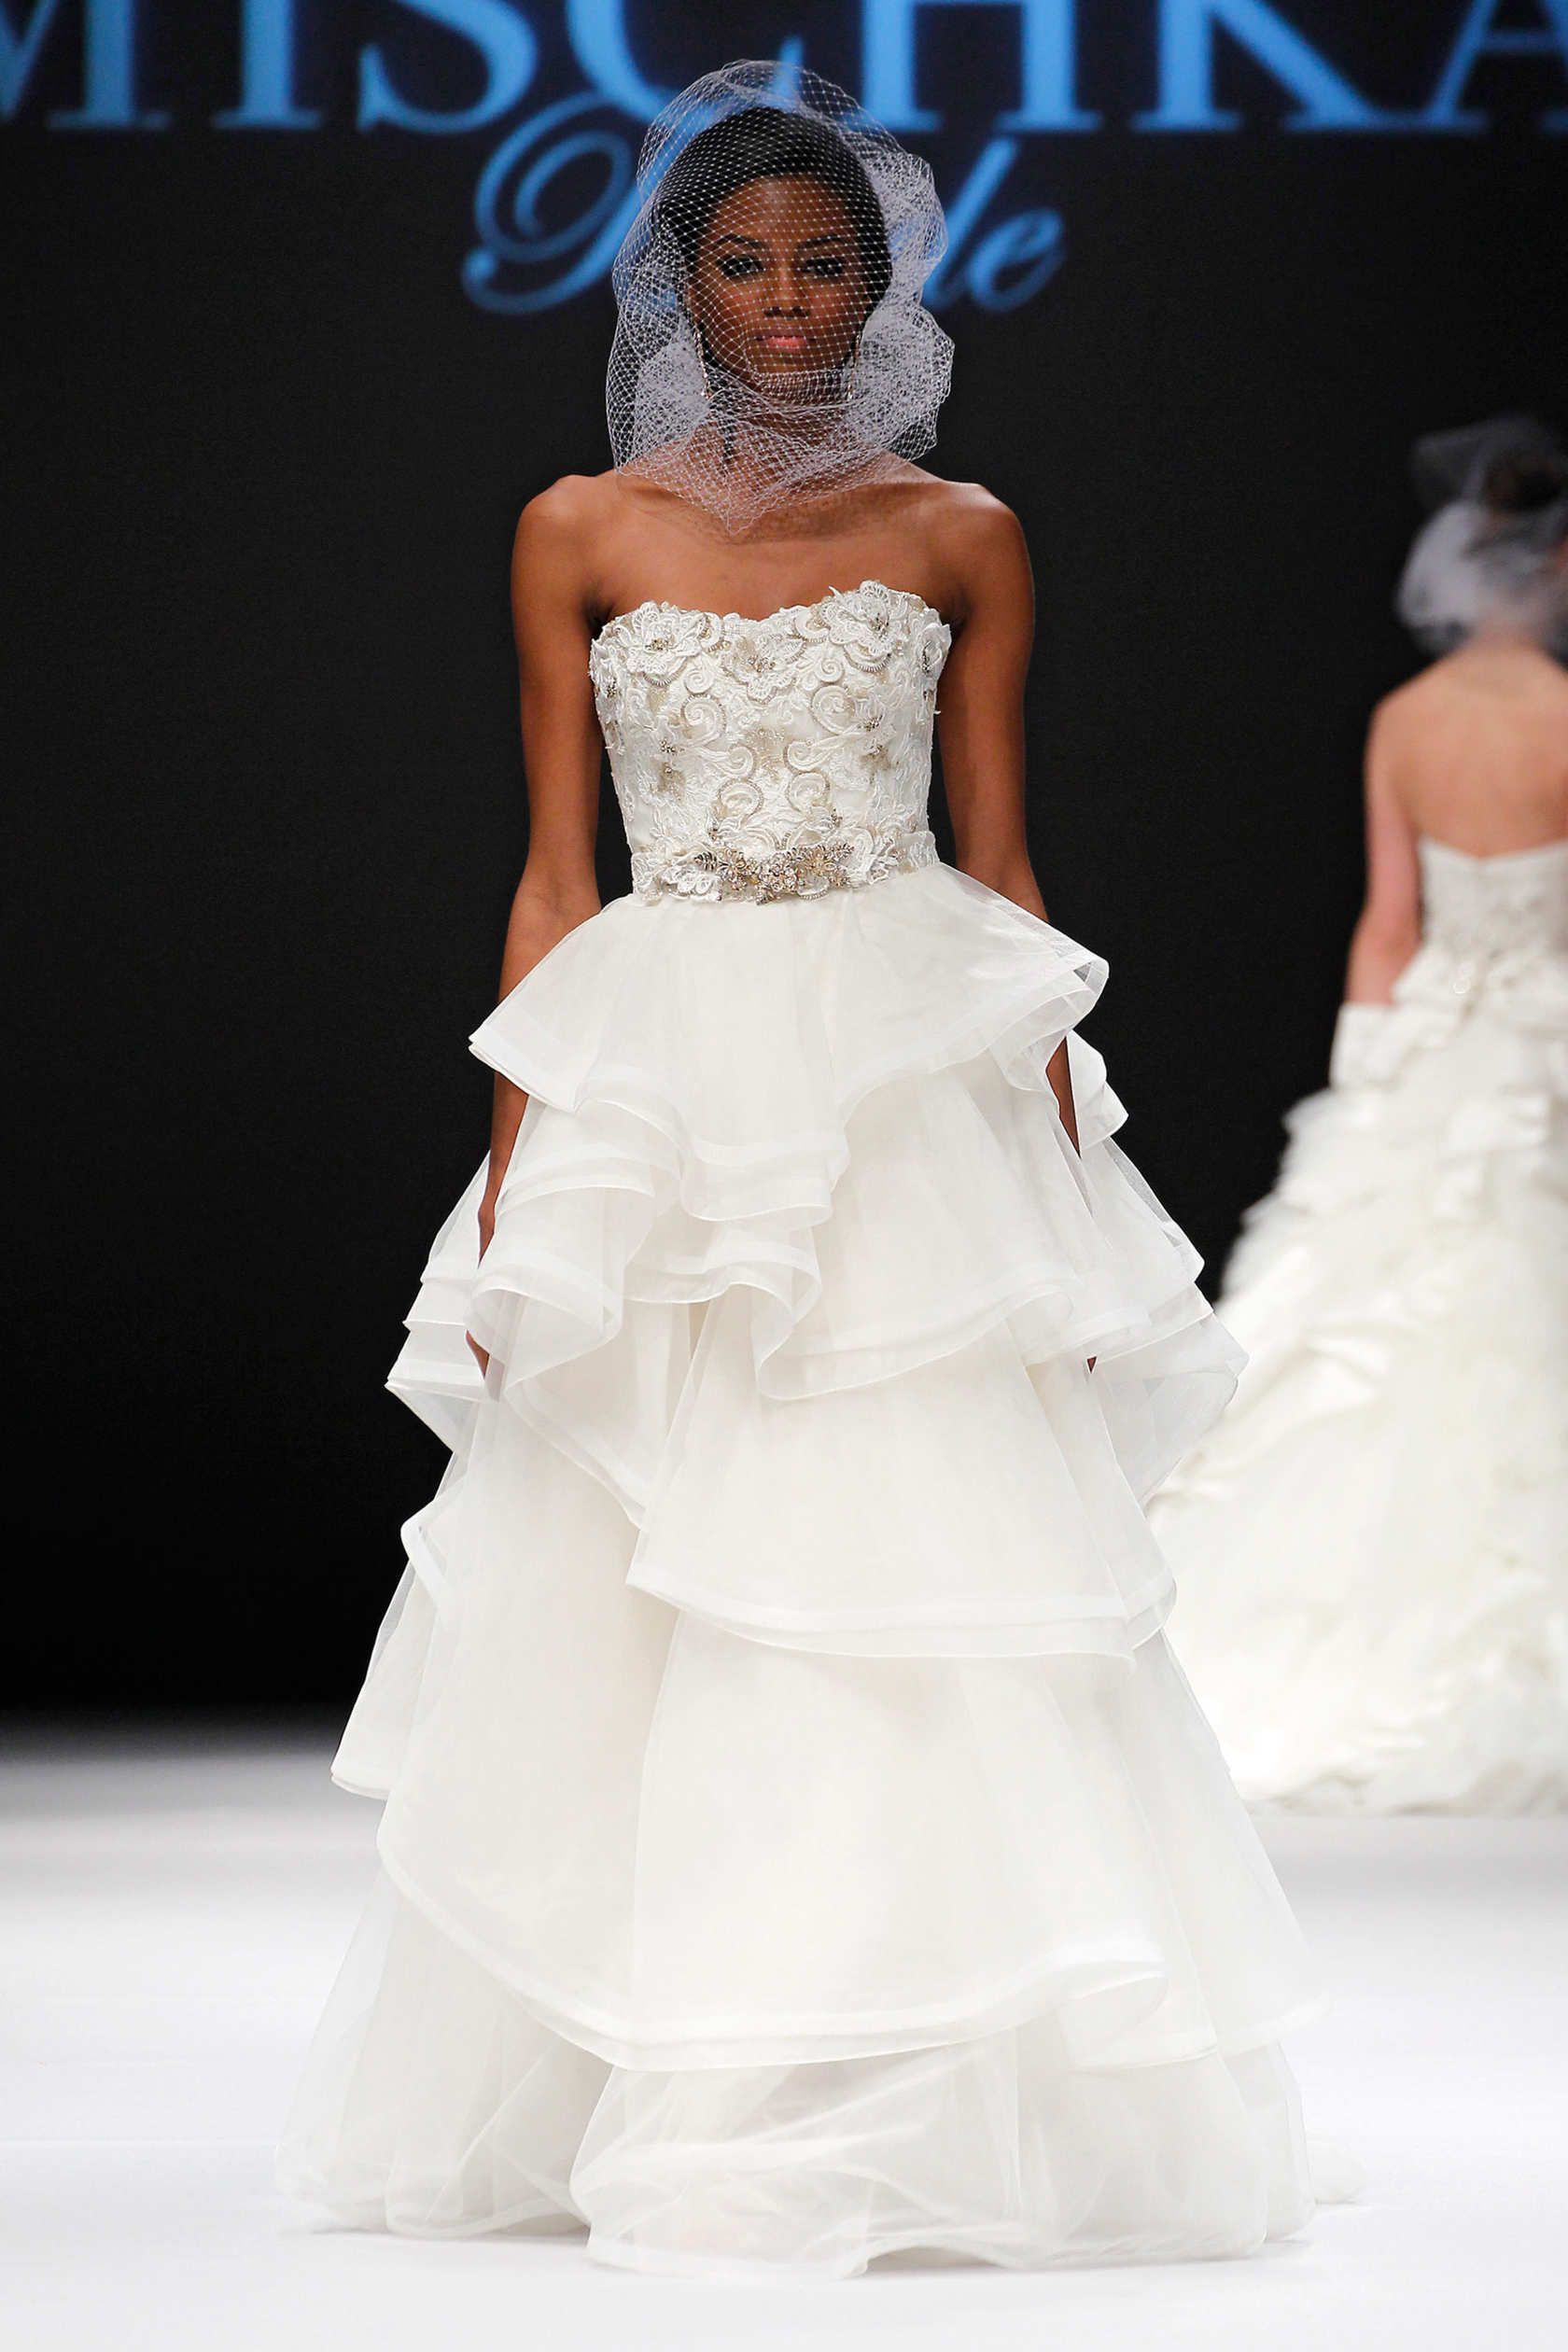 Badgley mischka wedding dress  Badgley Mischka  Badgley mischka bridal Badgley mischka and Bridal